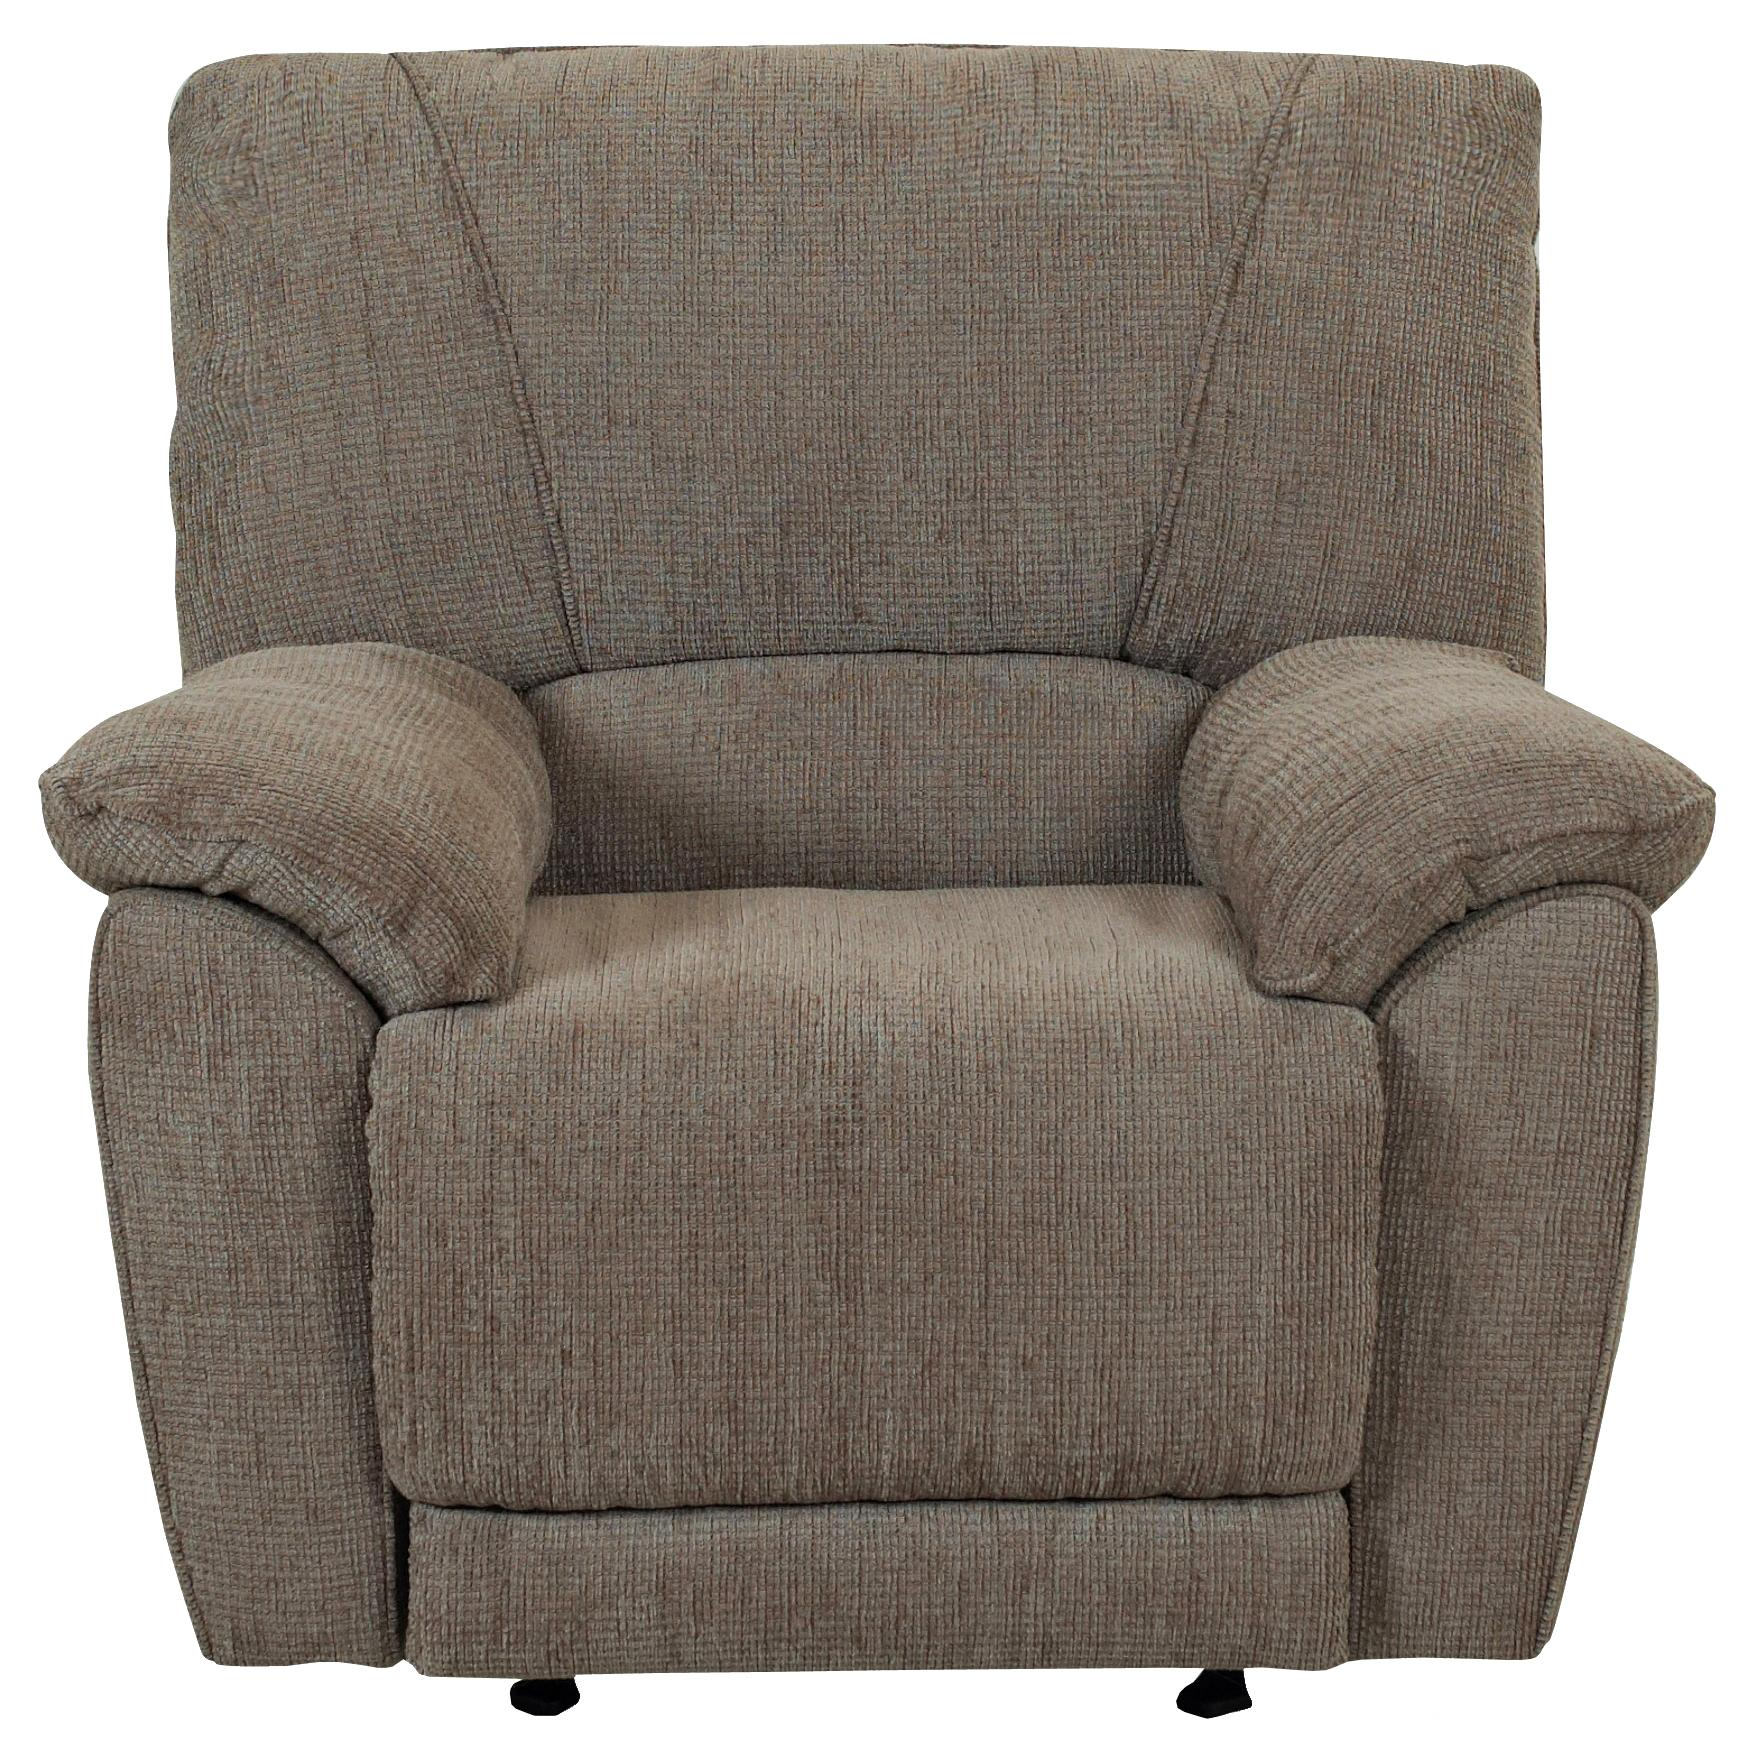 Klaussner Laredo  Gliding Reclining Chair - Item Number: 57903H GLRC